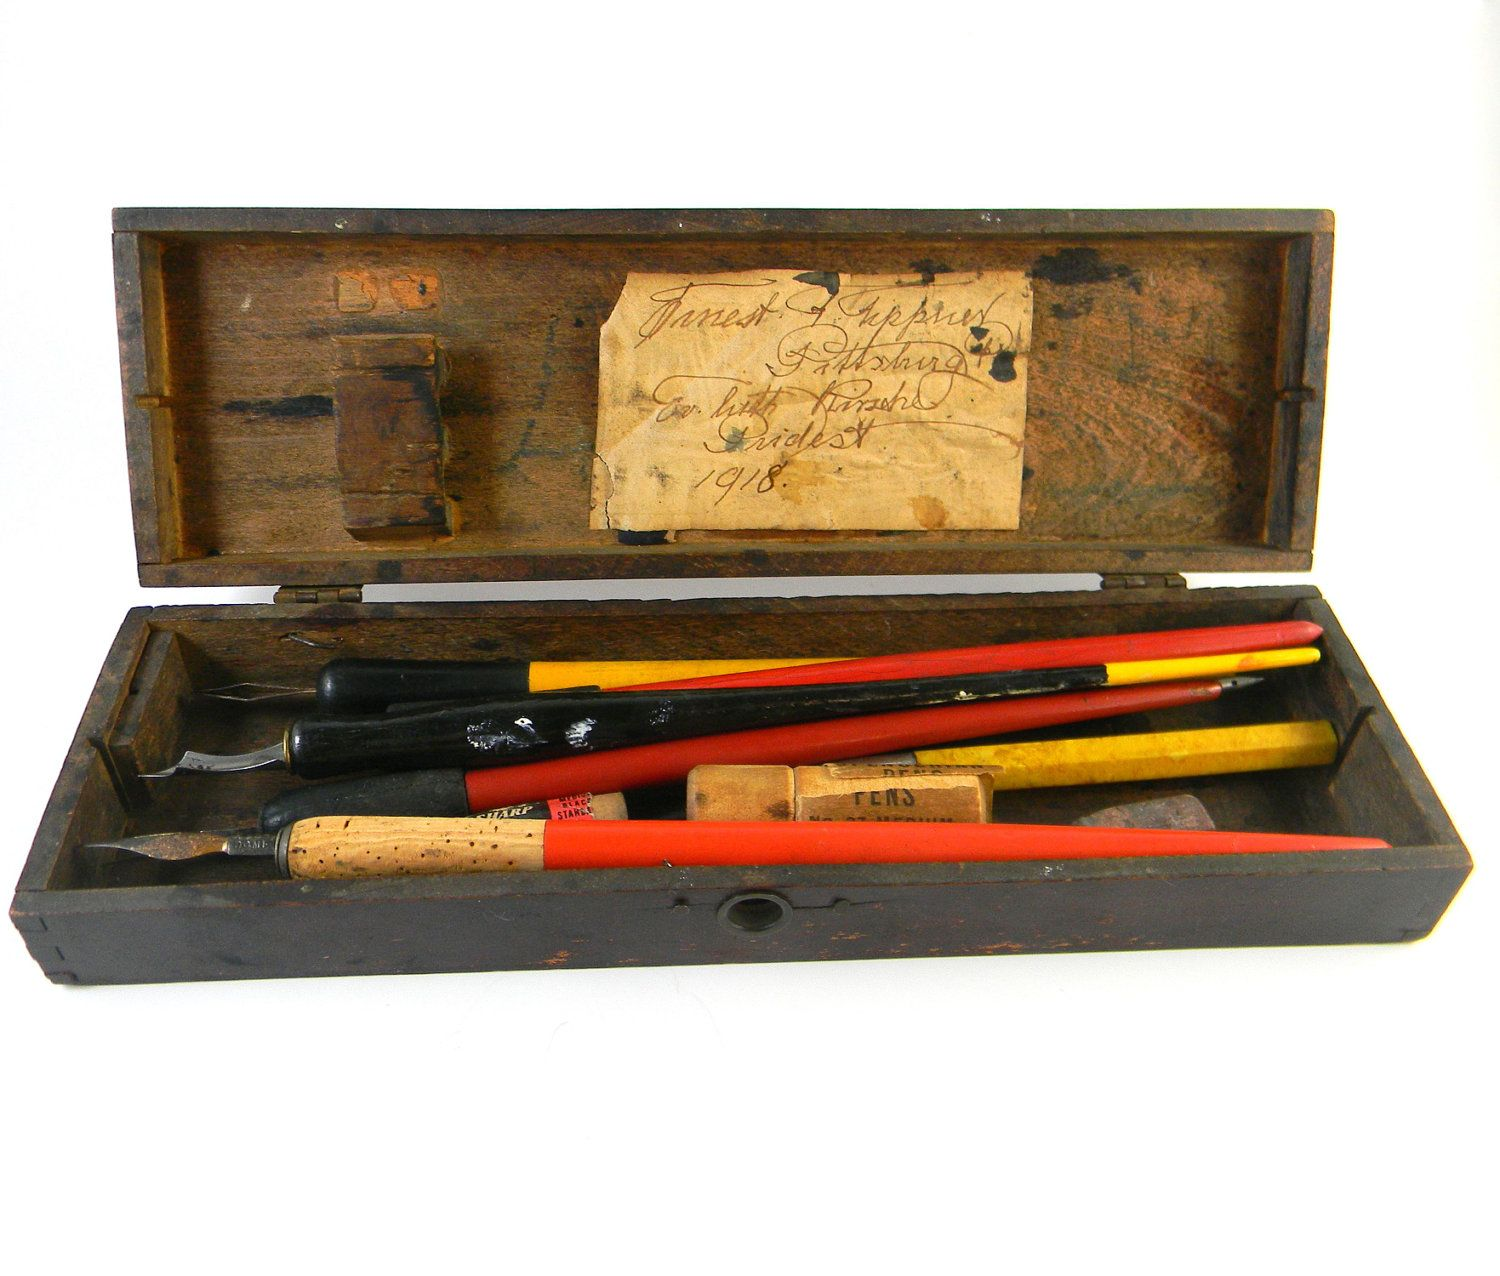 Antique Artist S Tool Box In Wood With Calligraphy Pens